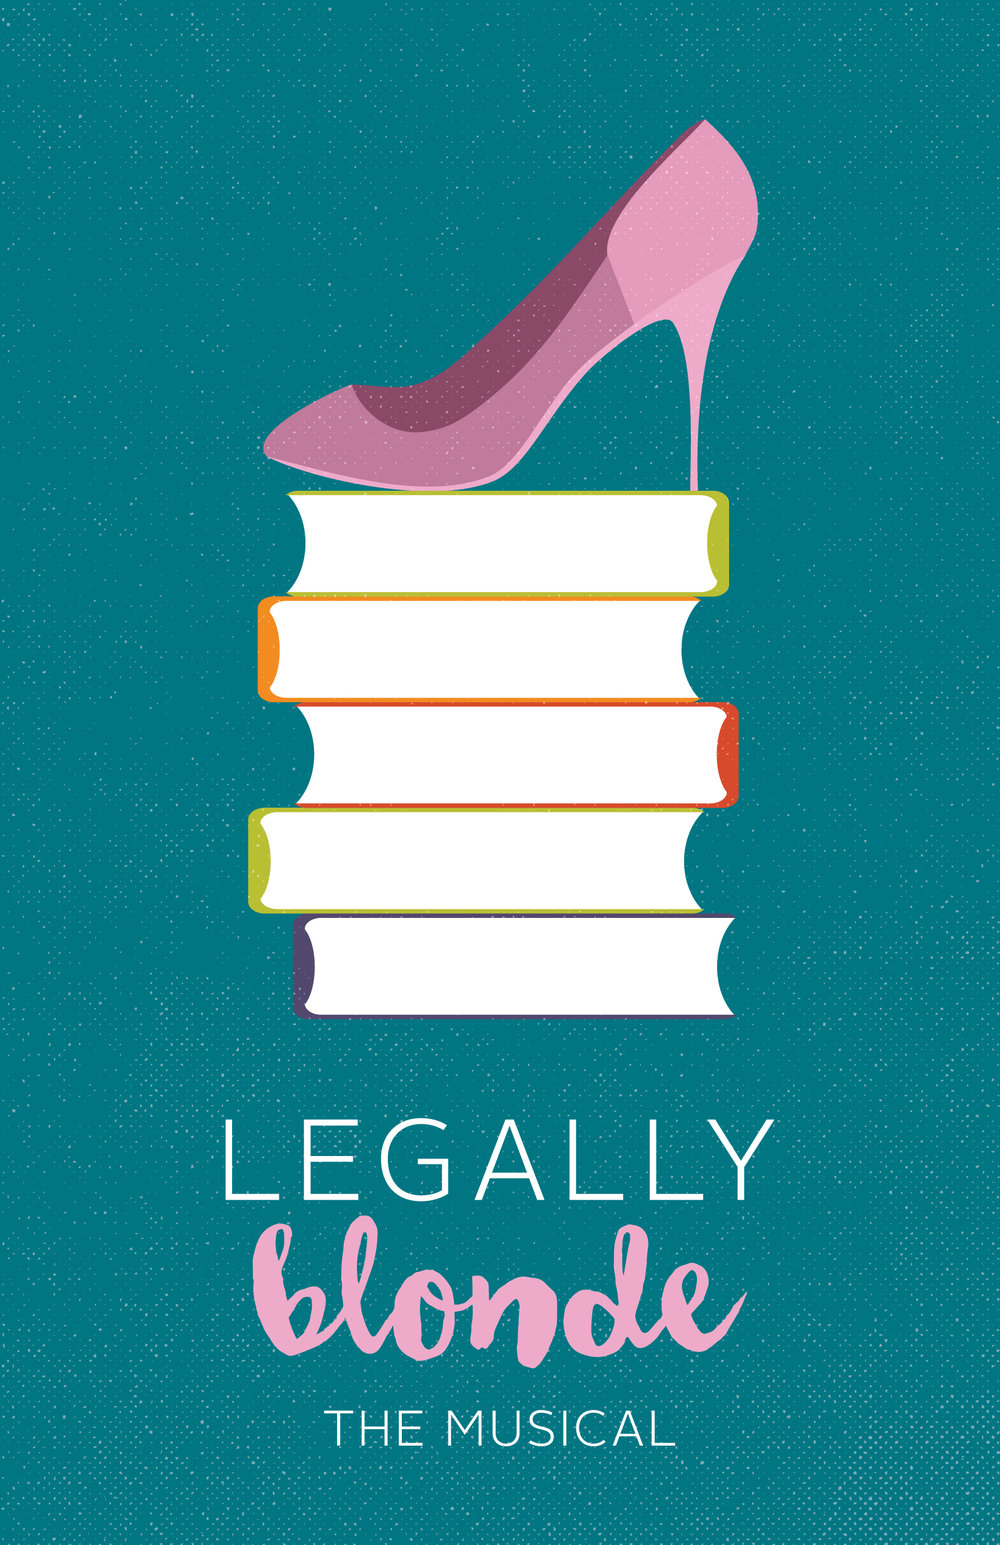 1819-10-Legally-Blonde-Show-Image-Vertical.jpg